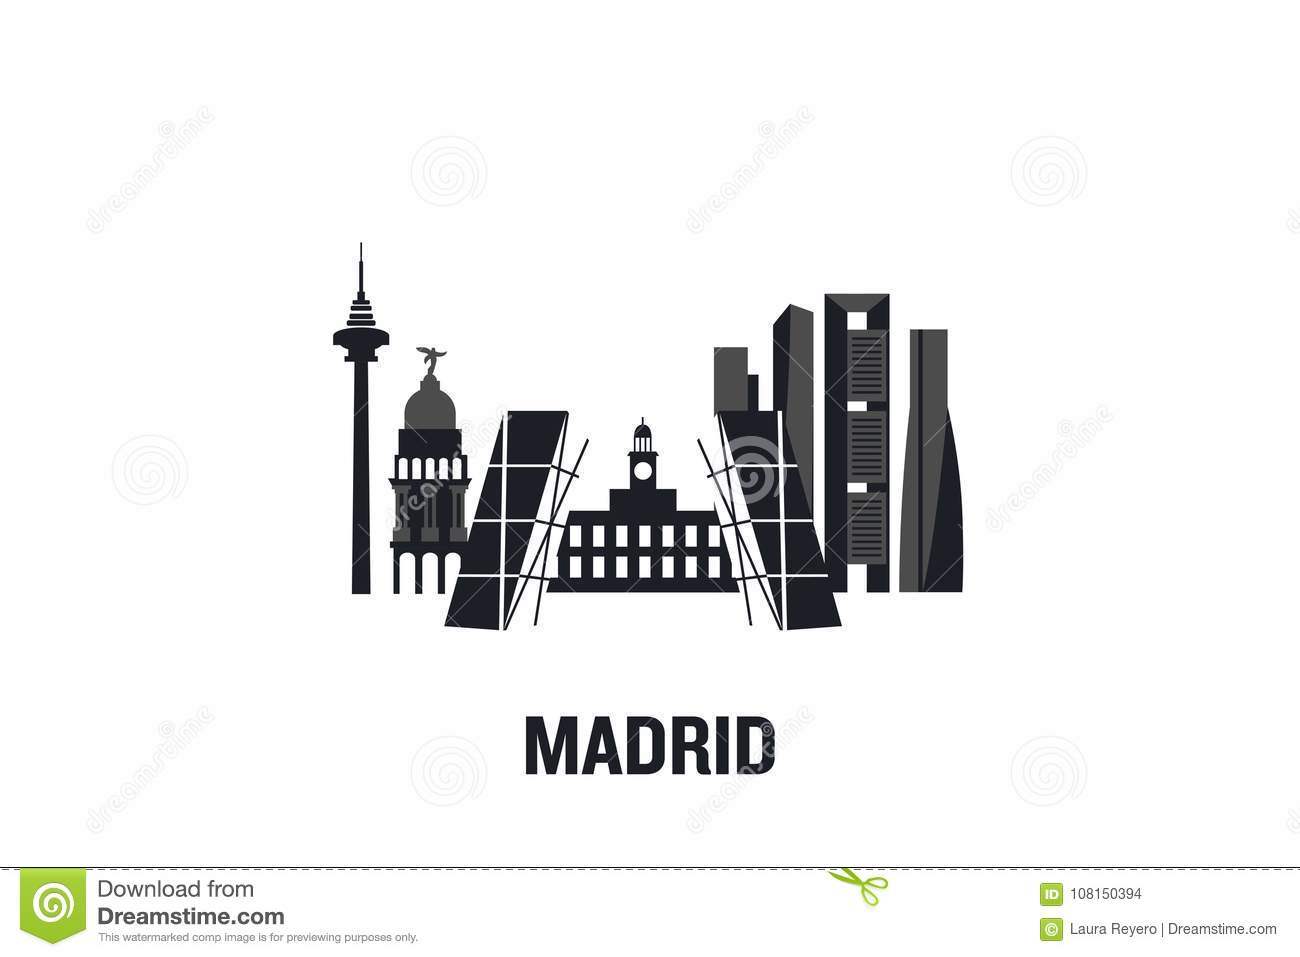 Madrid art design concept.